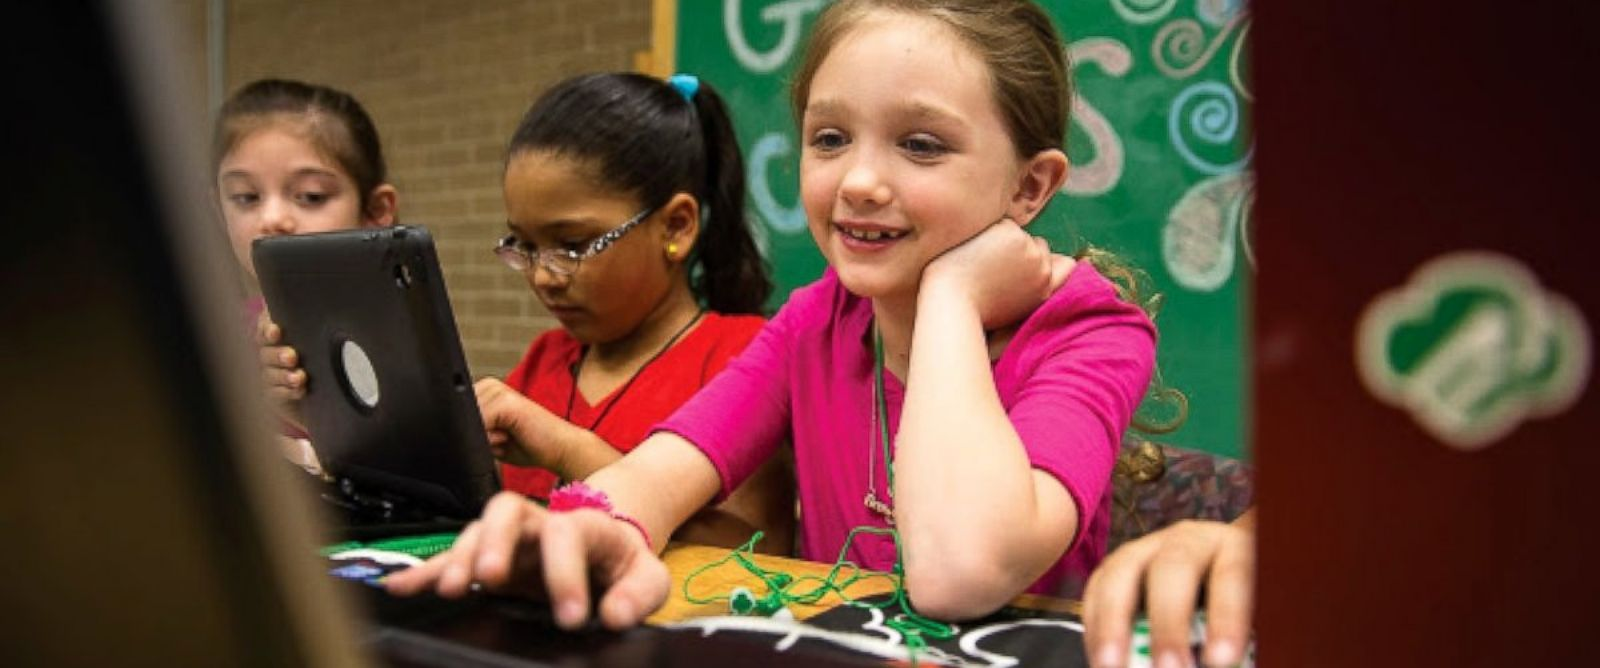 PHOTO: Girl Scouts USA announced they will roll out 18 new cybersecurity badges in the fall of 2018.